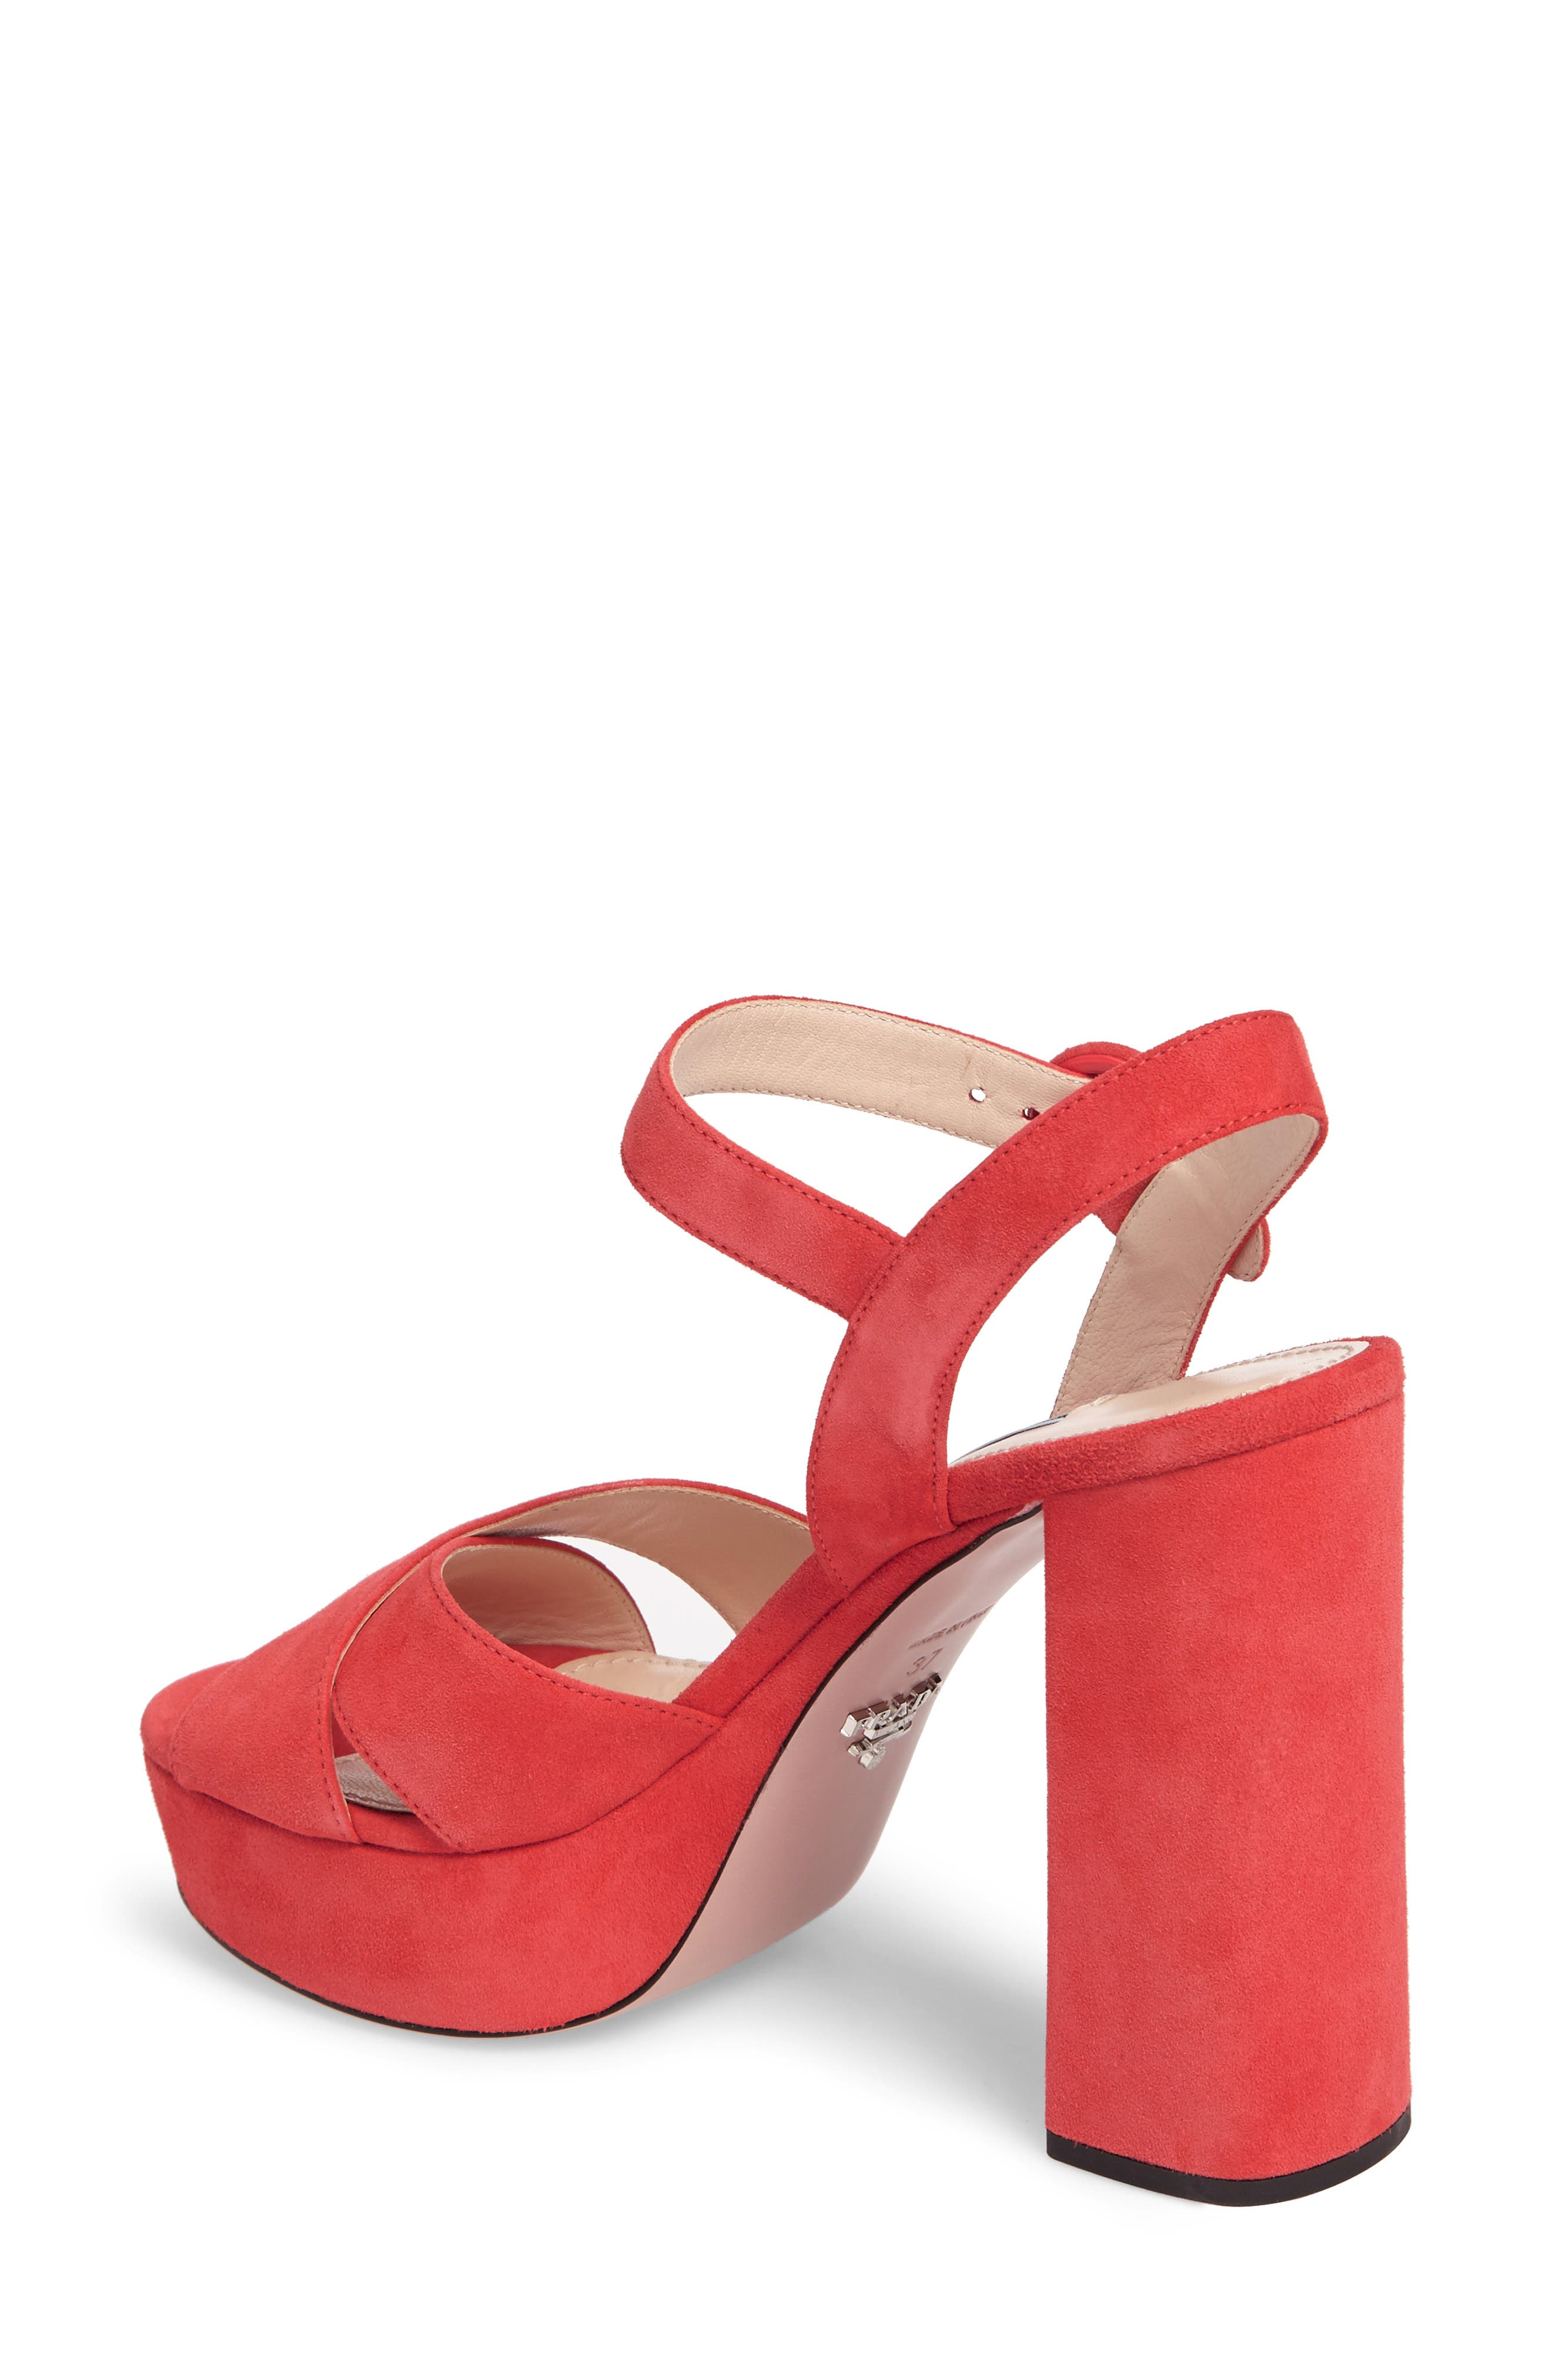 Block Heel Platform Sandal,                             Alternate thumbnail 2, color,                             Corallo